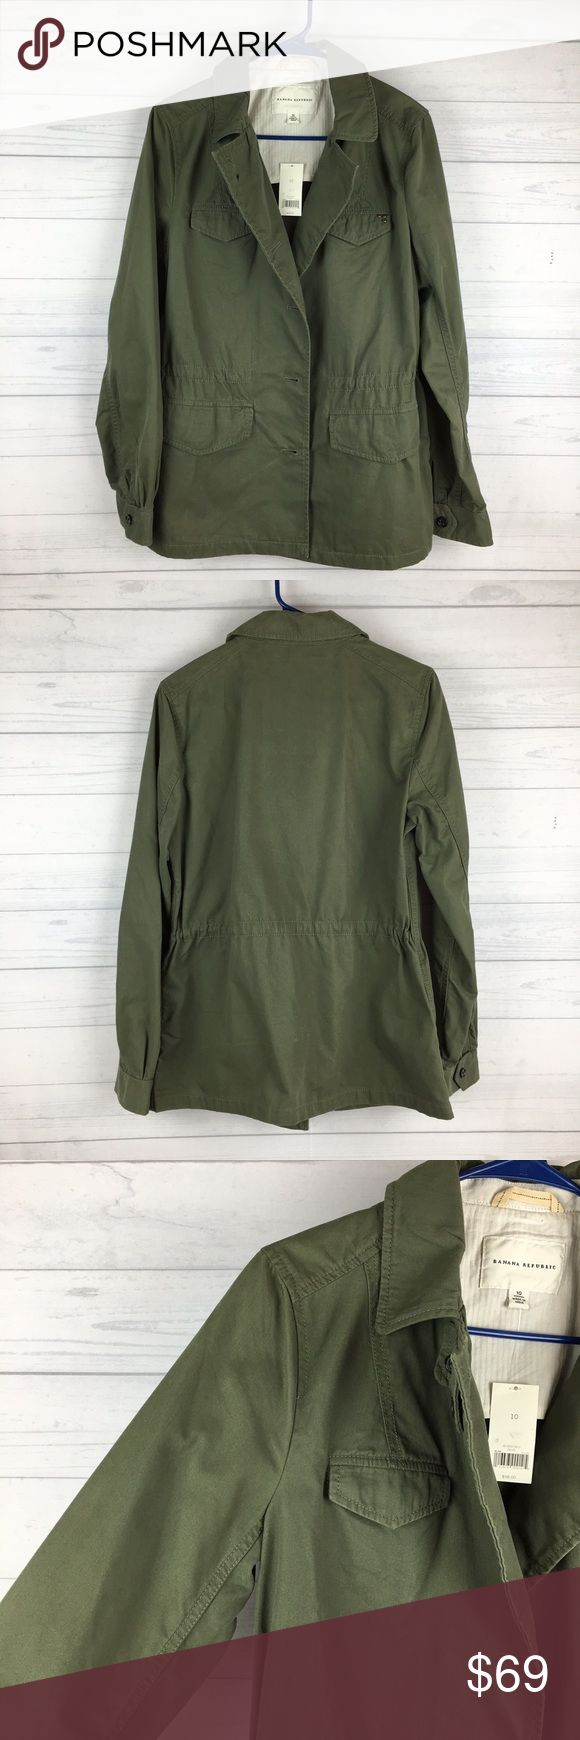 """NEW Banana Republic Military Field Jacket Coat 10 NWT Banana Republic Military Field Utility Jacket. Army Green. Long sleeve. Button closure. Condition: new with tags. Size: 10. Pit to pit: 19"""". Shoulder to shoulder: 16"""". Length: 28"""". #1287 Banana Republic Jackets & Coats Utility Jackets"""